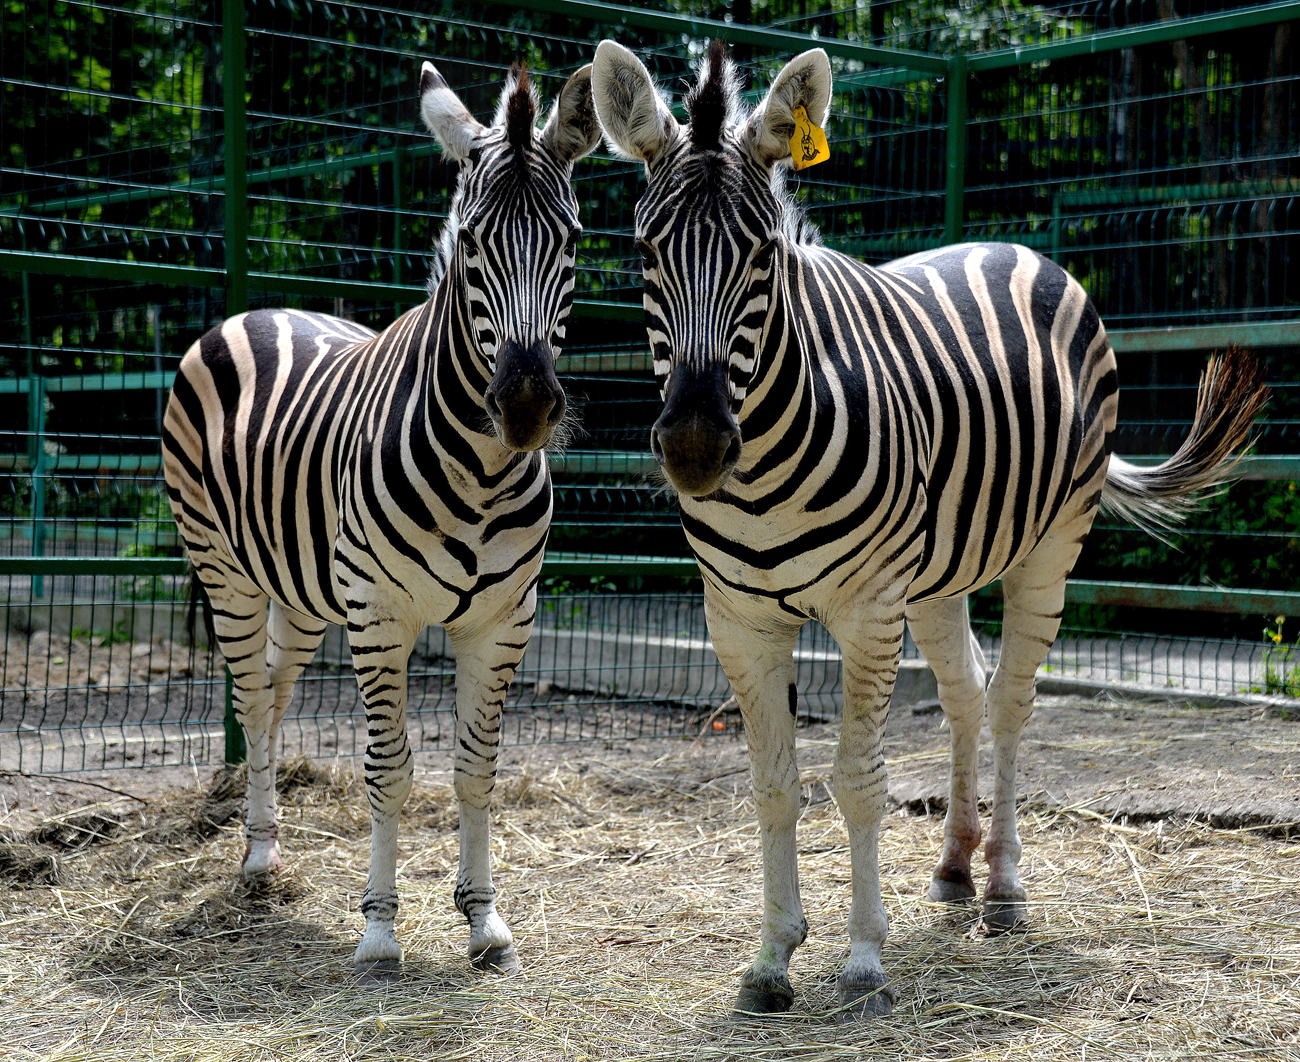 Young zebras Zoya and Zina that have been brought to Sadgorod private zoo in Vladivostok from the zoo in Stary Oskol